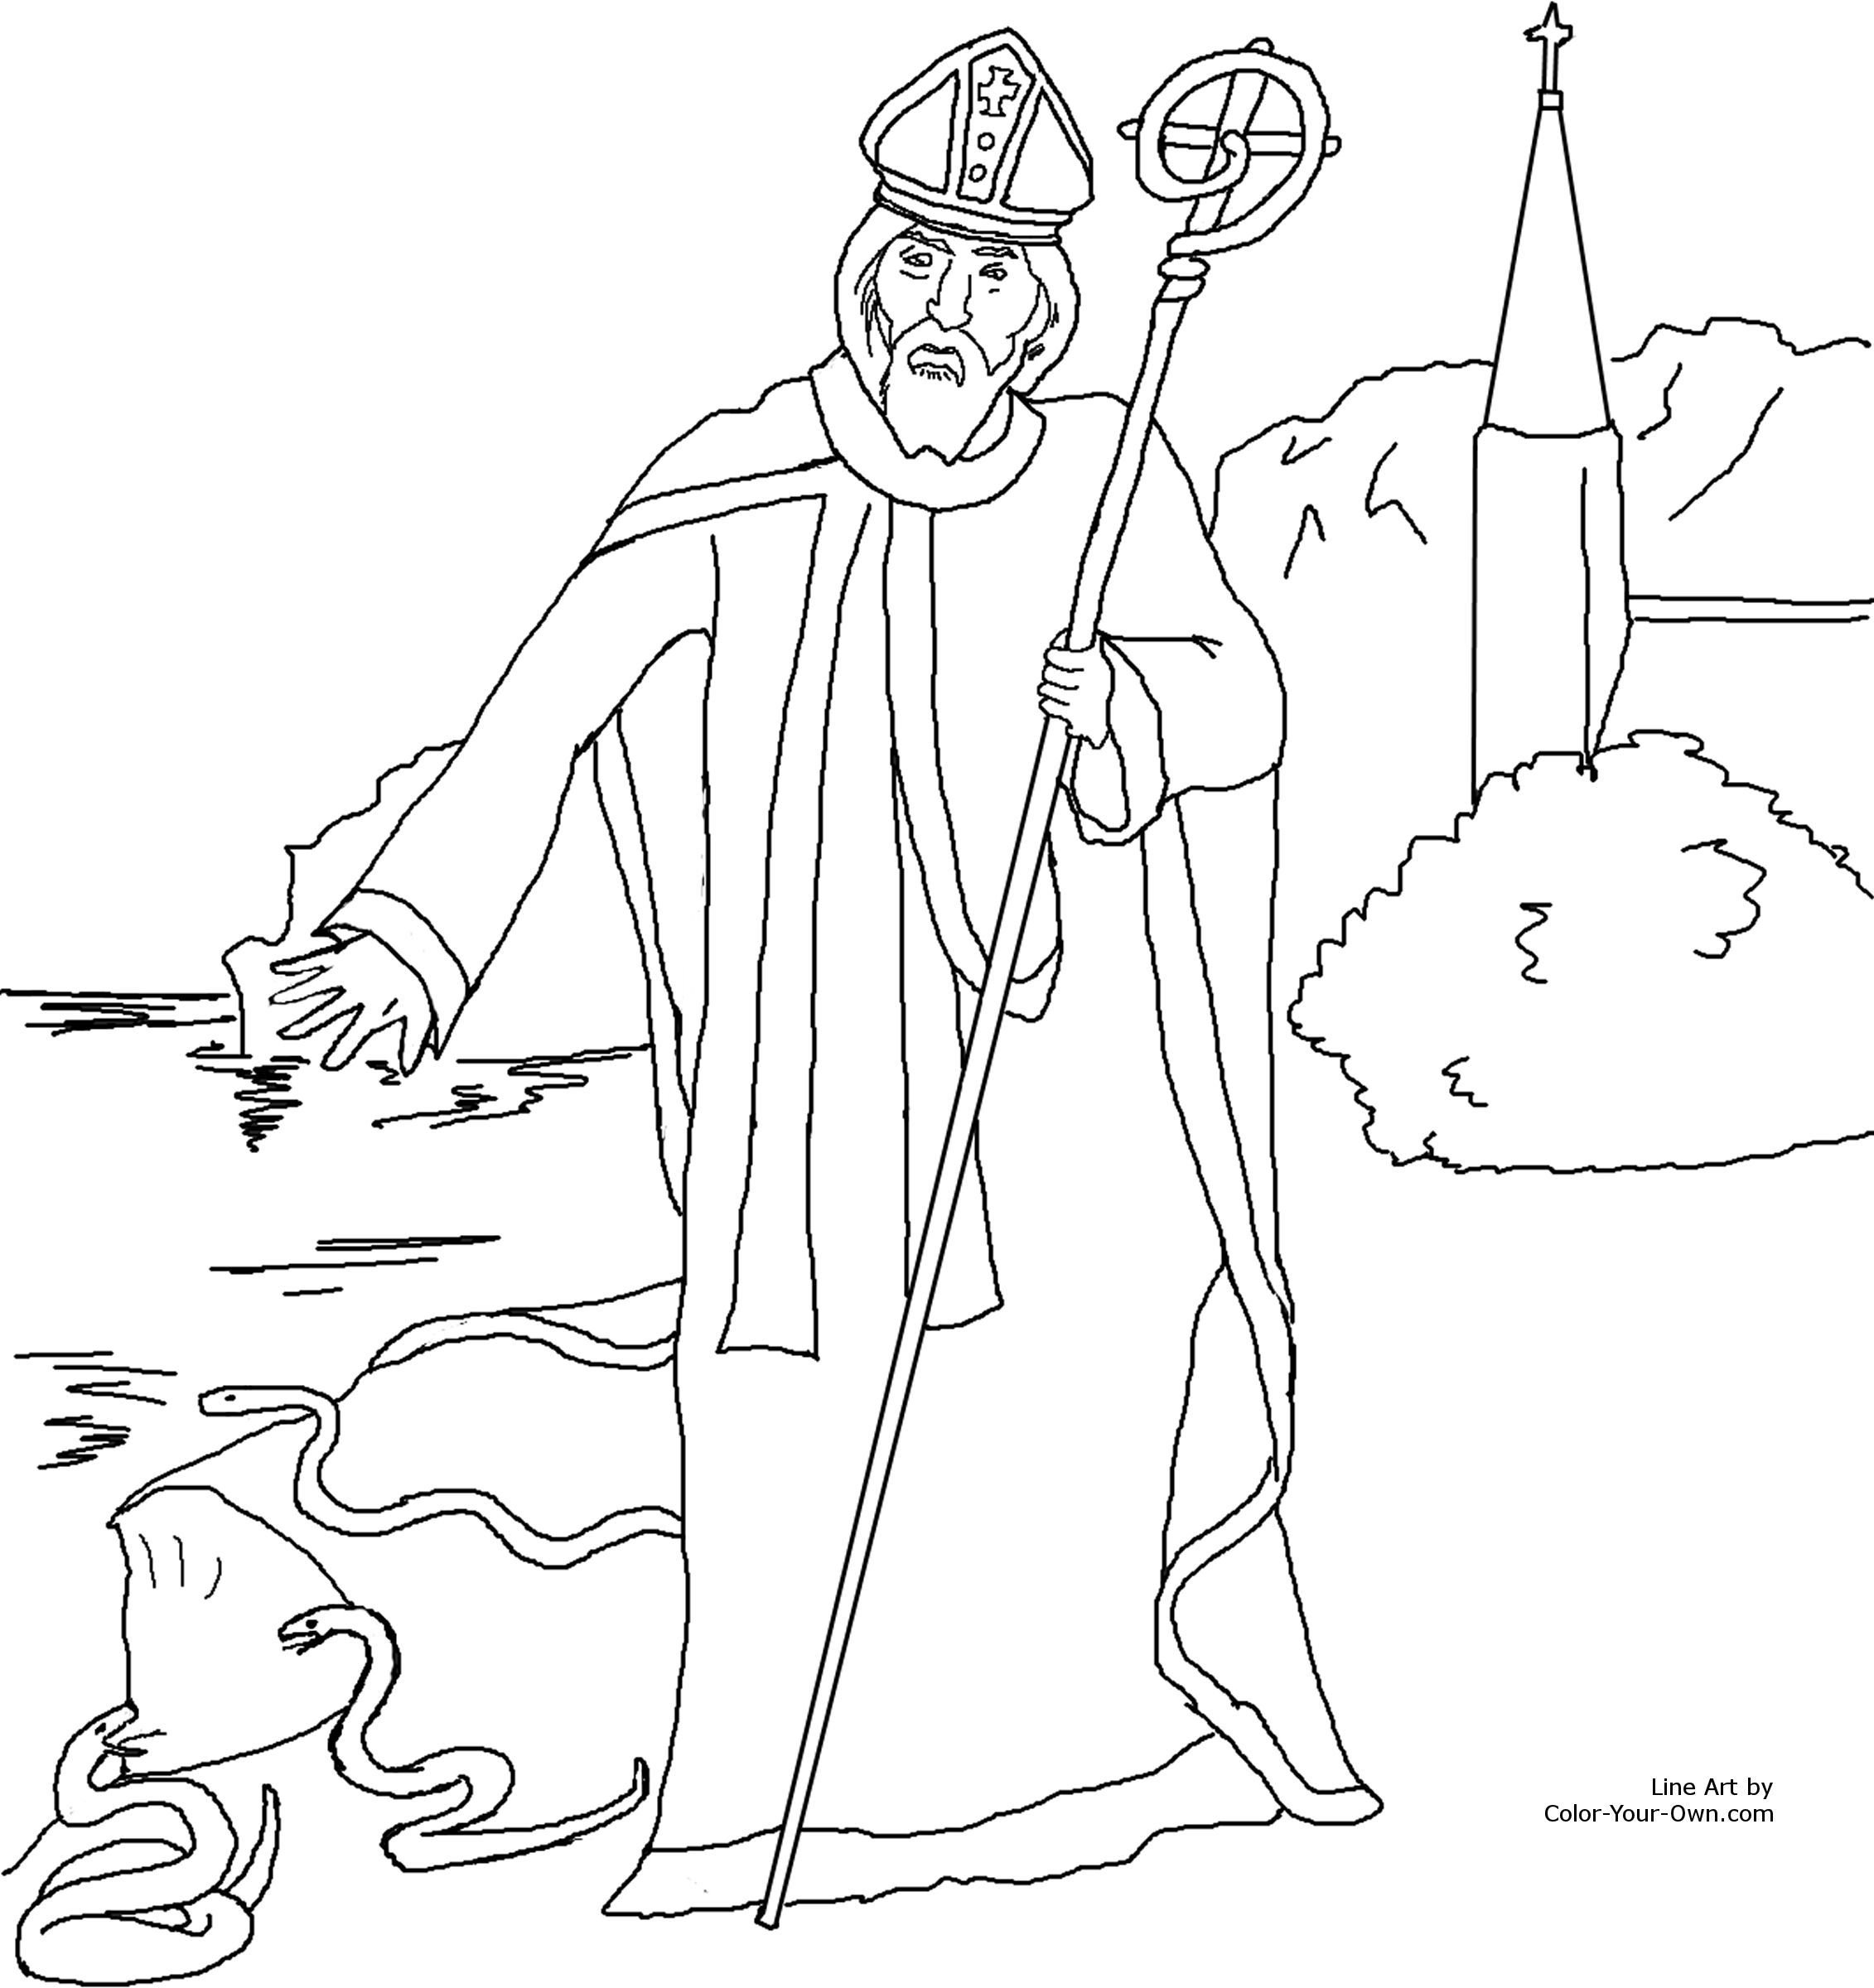 st patrick religious coloring page saint patrick driving out the snakes of ireland coloring